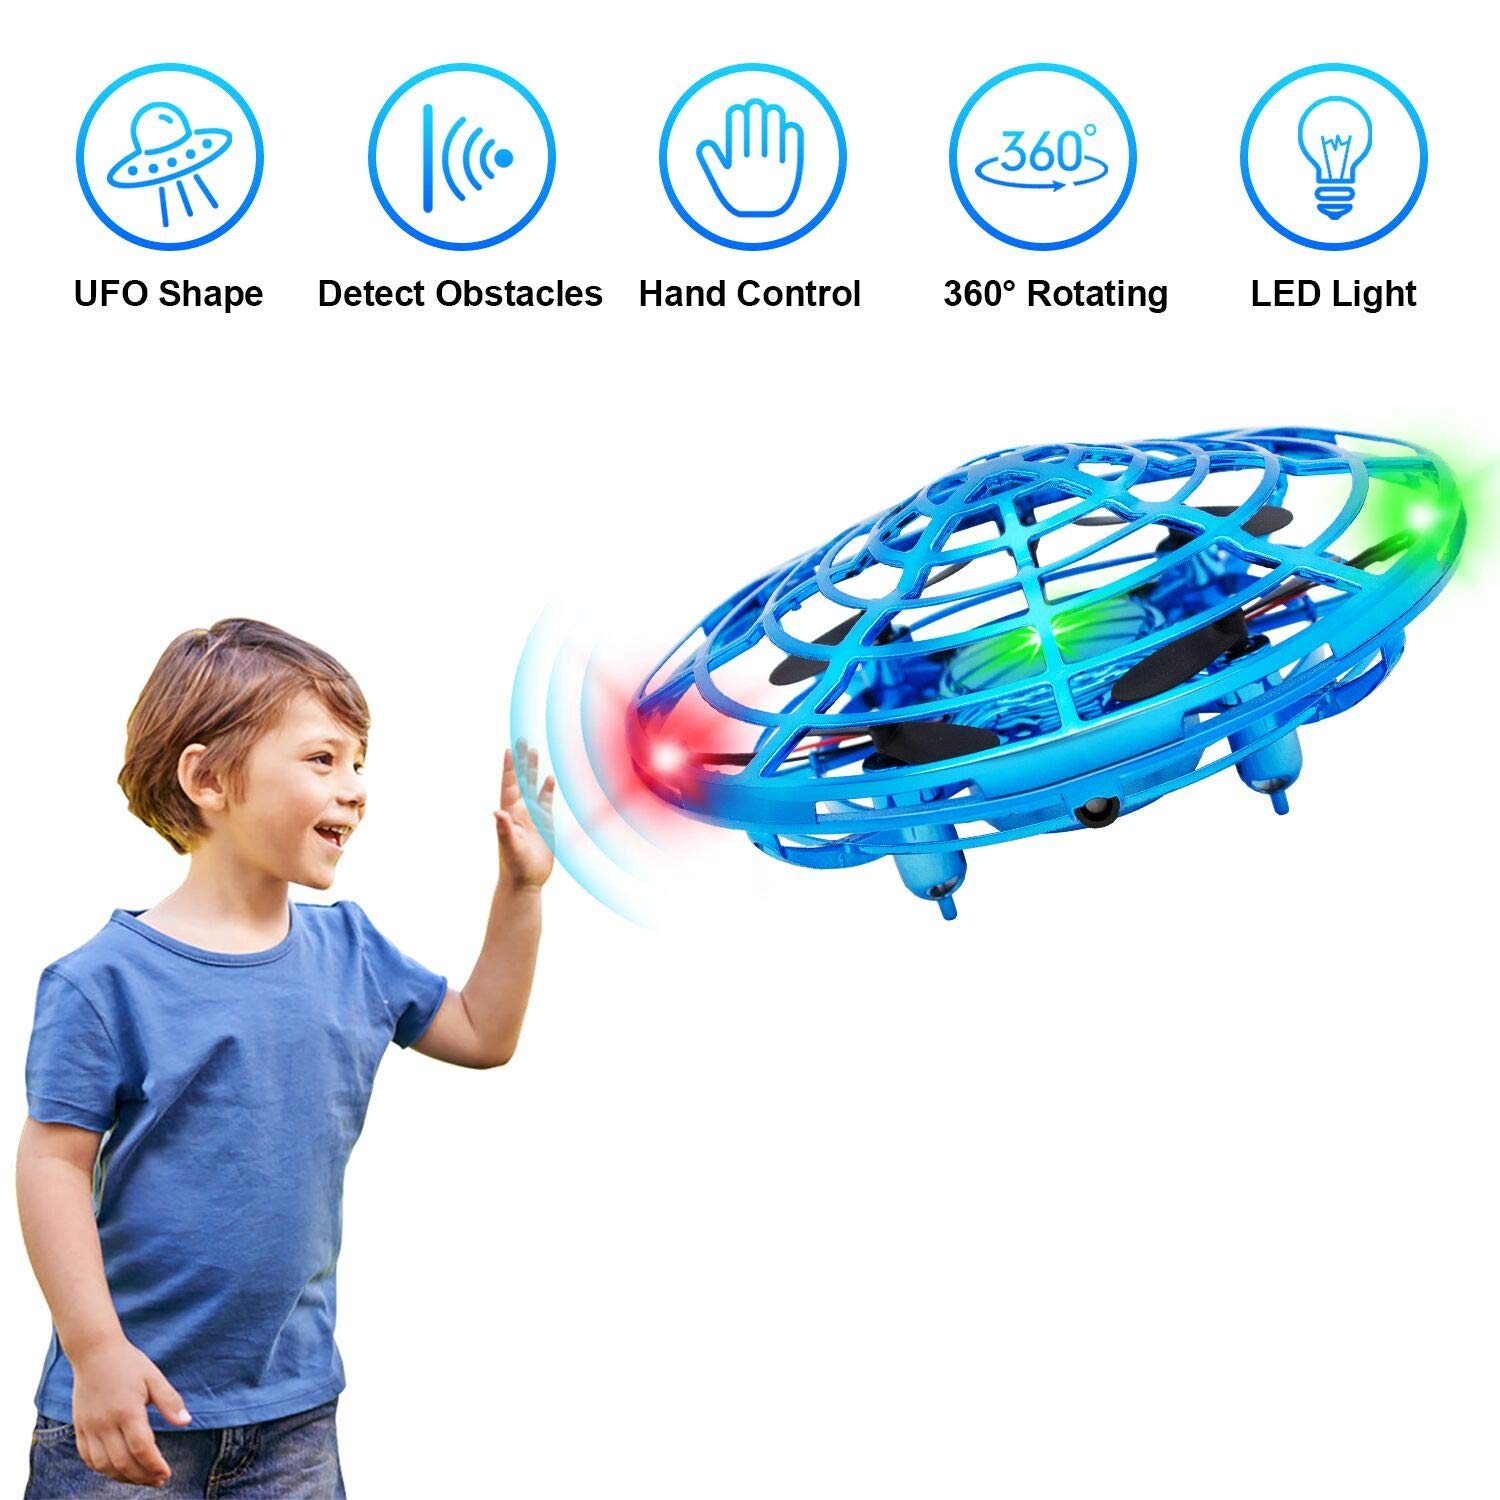 WEIRD TAILS Flying Toys Drones for Kids, 2019 Improved Flying Ball Drone Toy with Infrared Sensor Auto-Avoid Obstacles 360°Rotating LED Light, Mini Quadcopter Hand Operated Drones for Boys or Girls